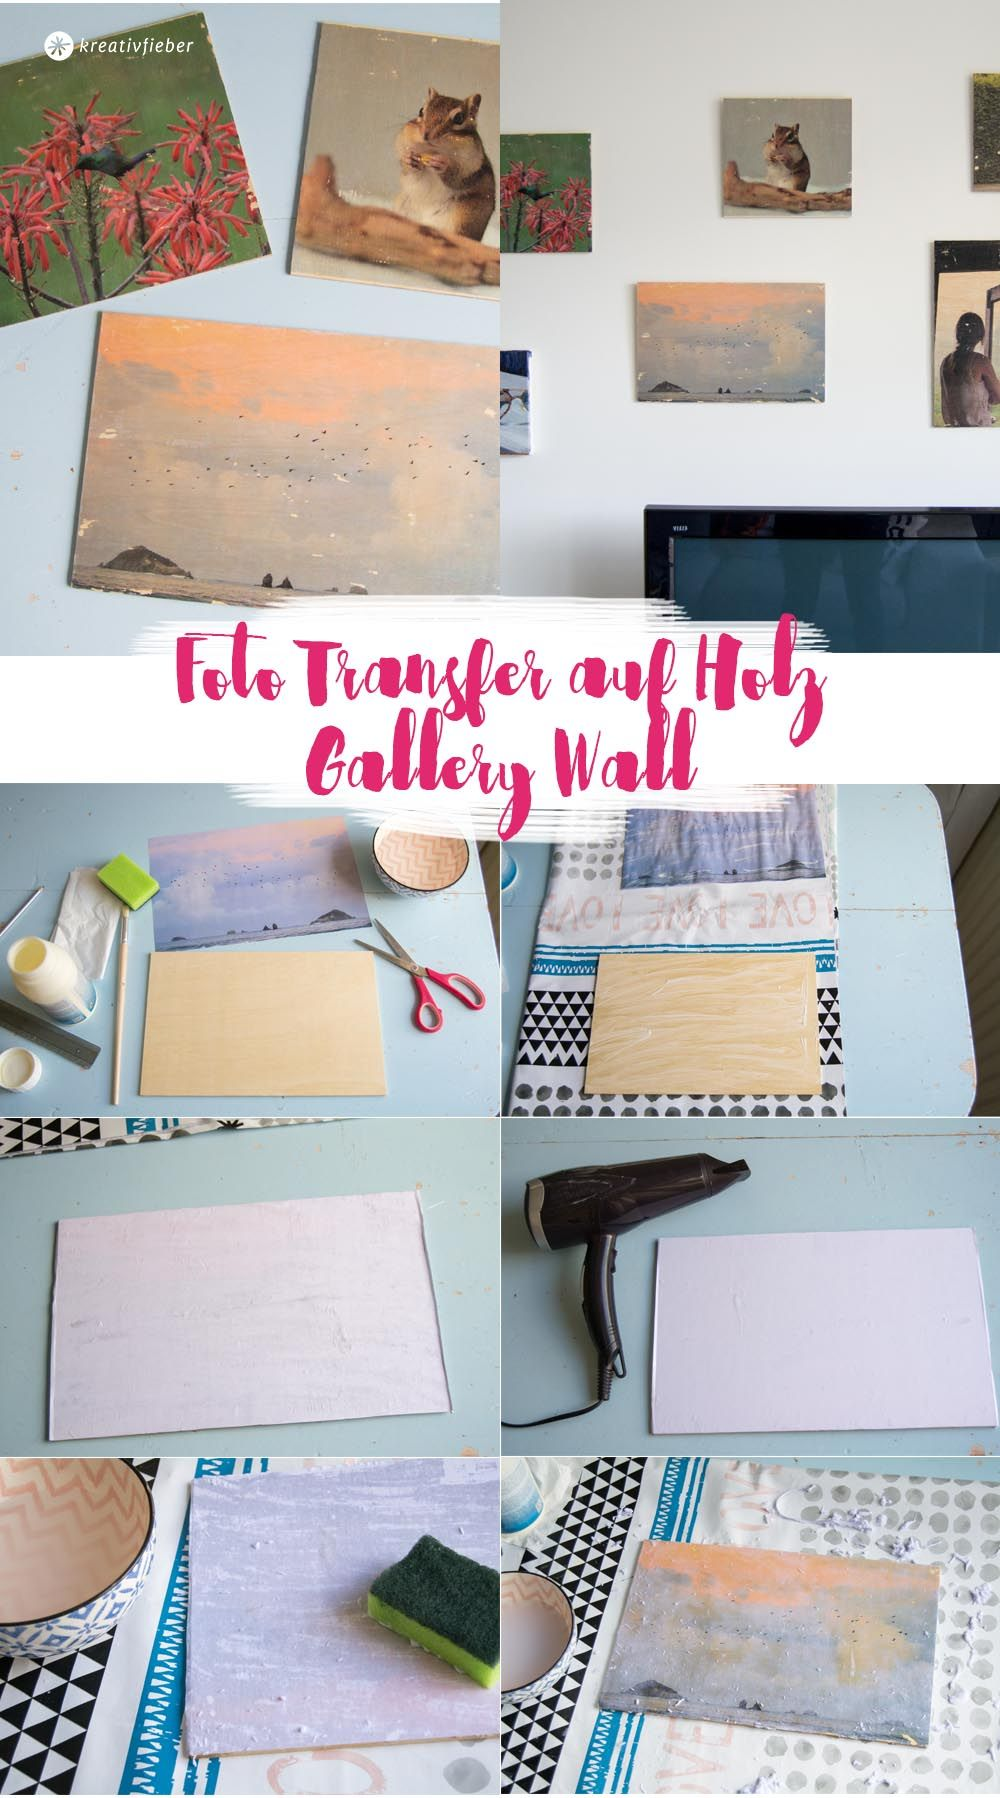 Fotodruck Auf Holz Diy Fototransfer Auf Holz Gallery Wall Diy Ideas Photo Transfer To